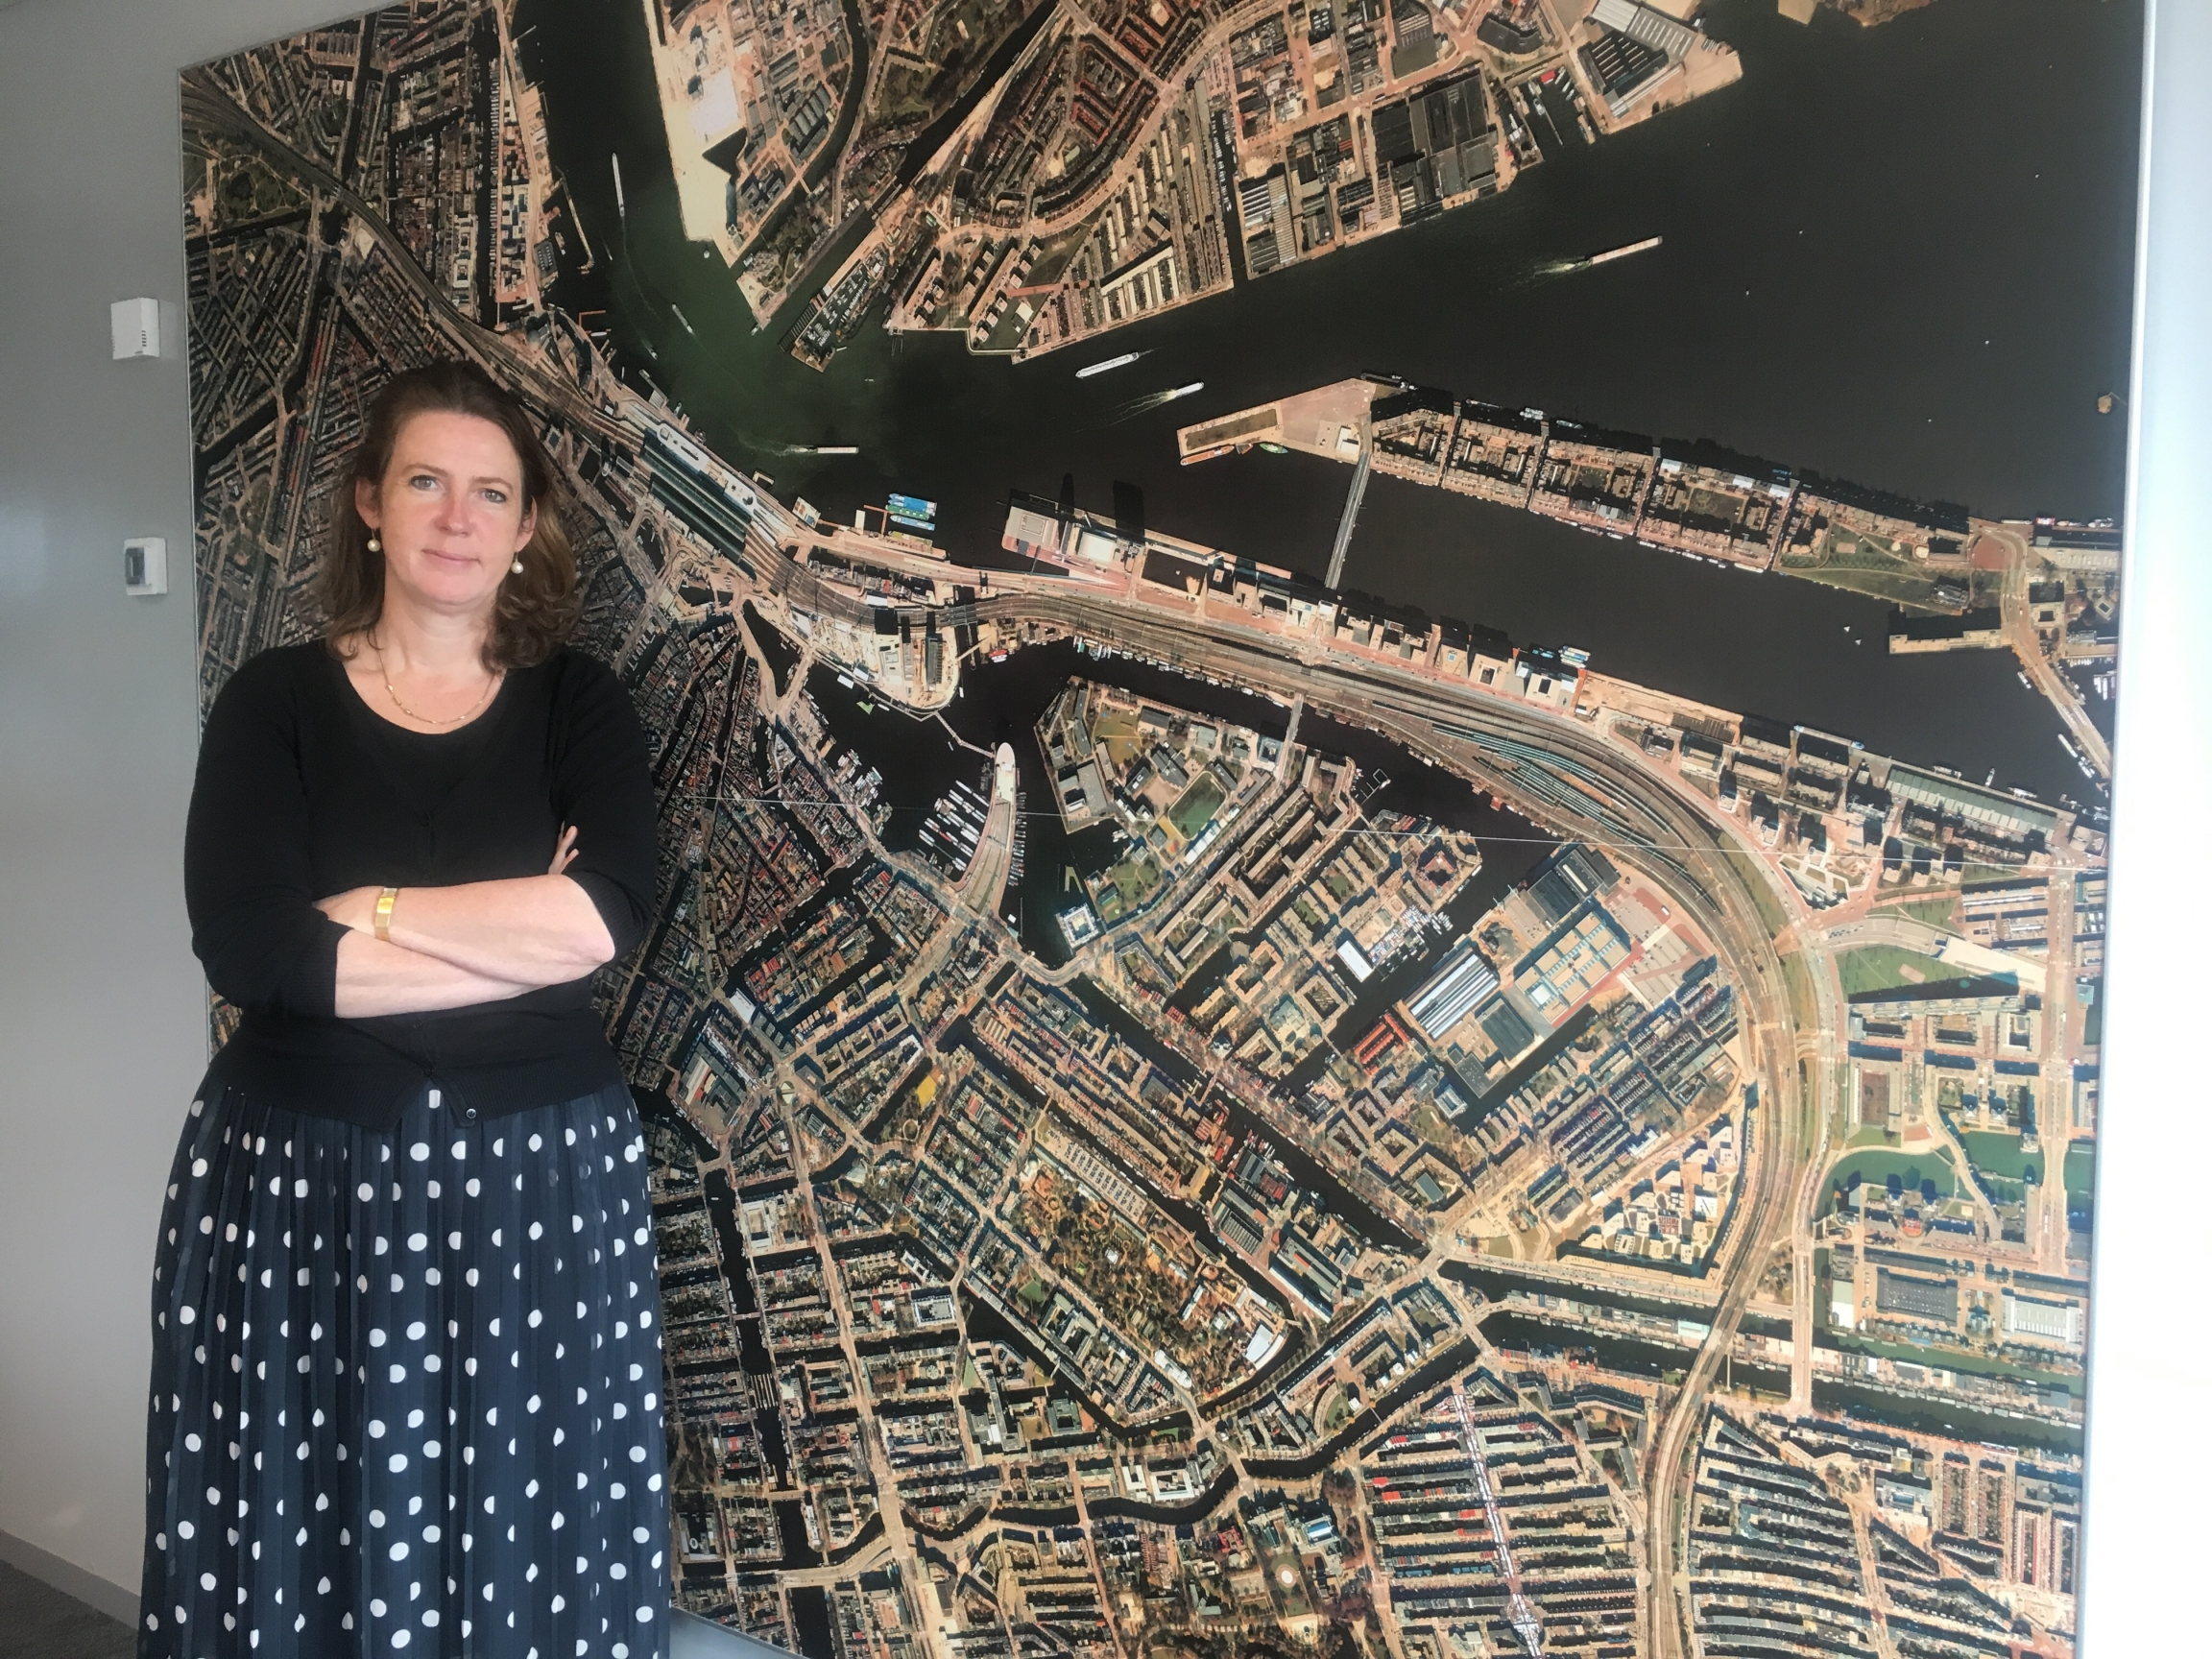 Mascha ten Bruggencate, district governor with the city of Amsterdam